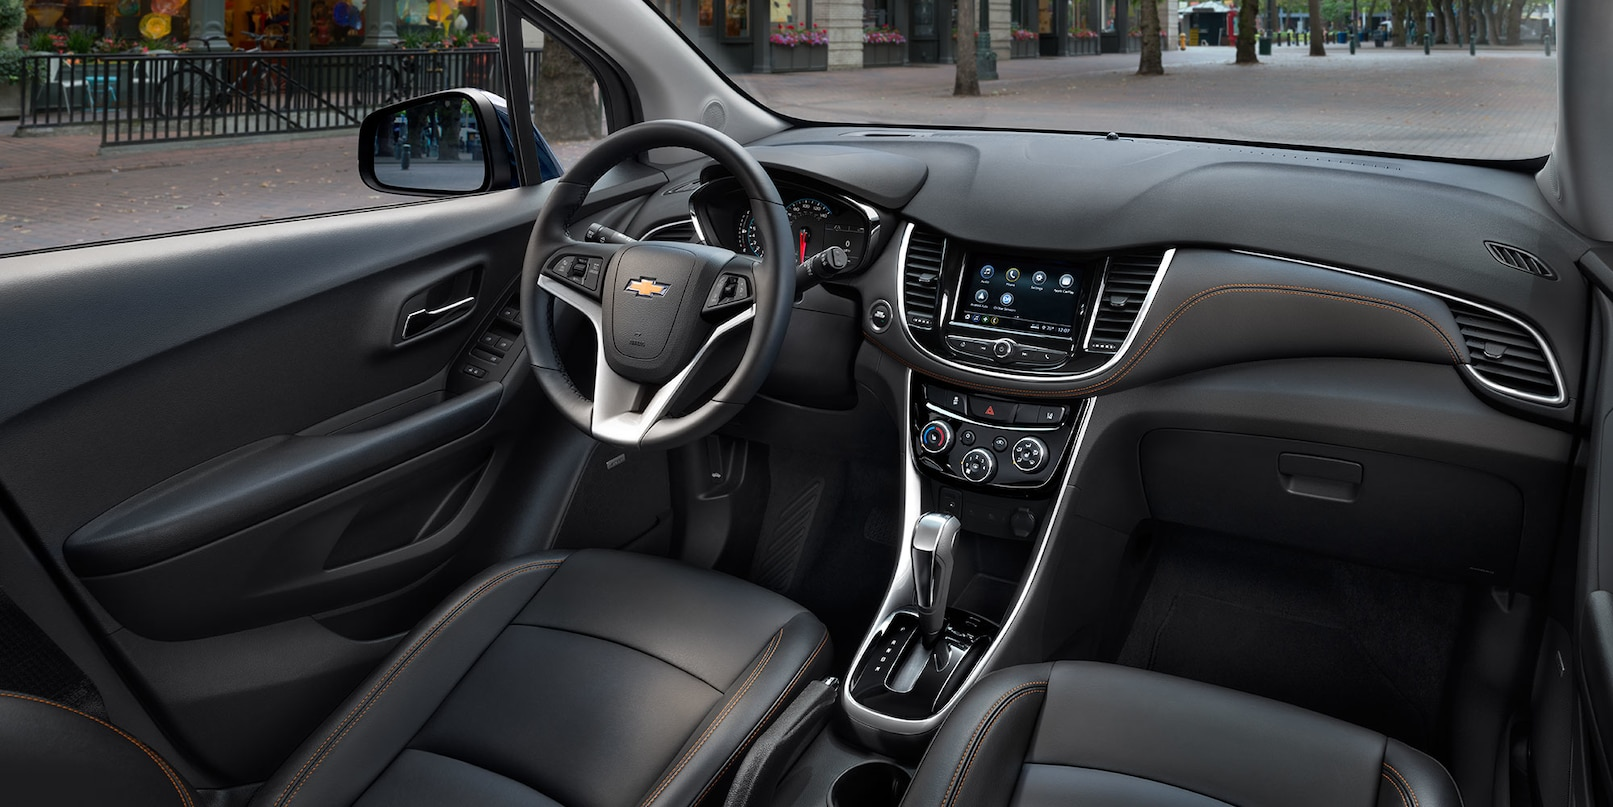 2018 Chevrolet Trax For Sale Near Battle Creek Mi Art Moehn Auto